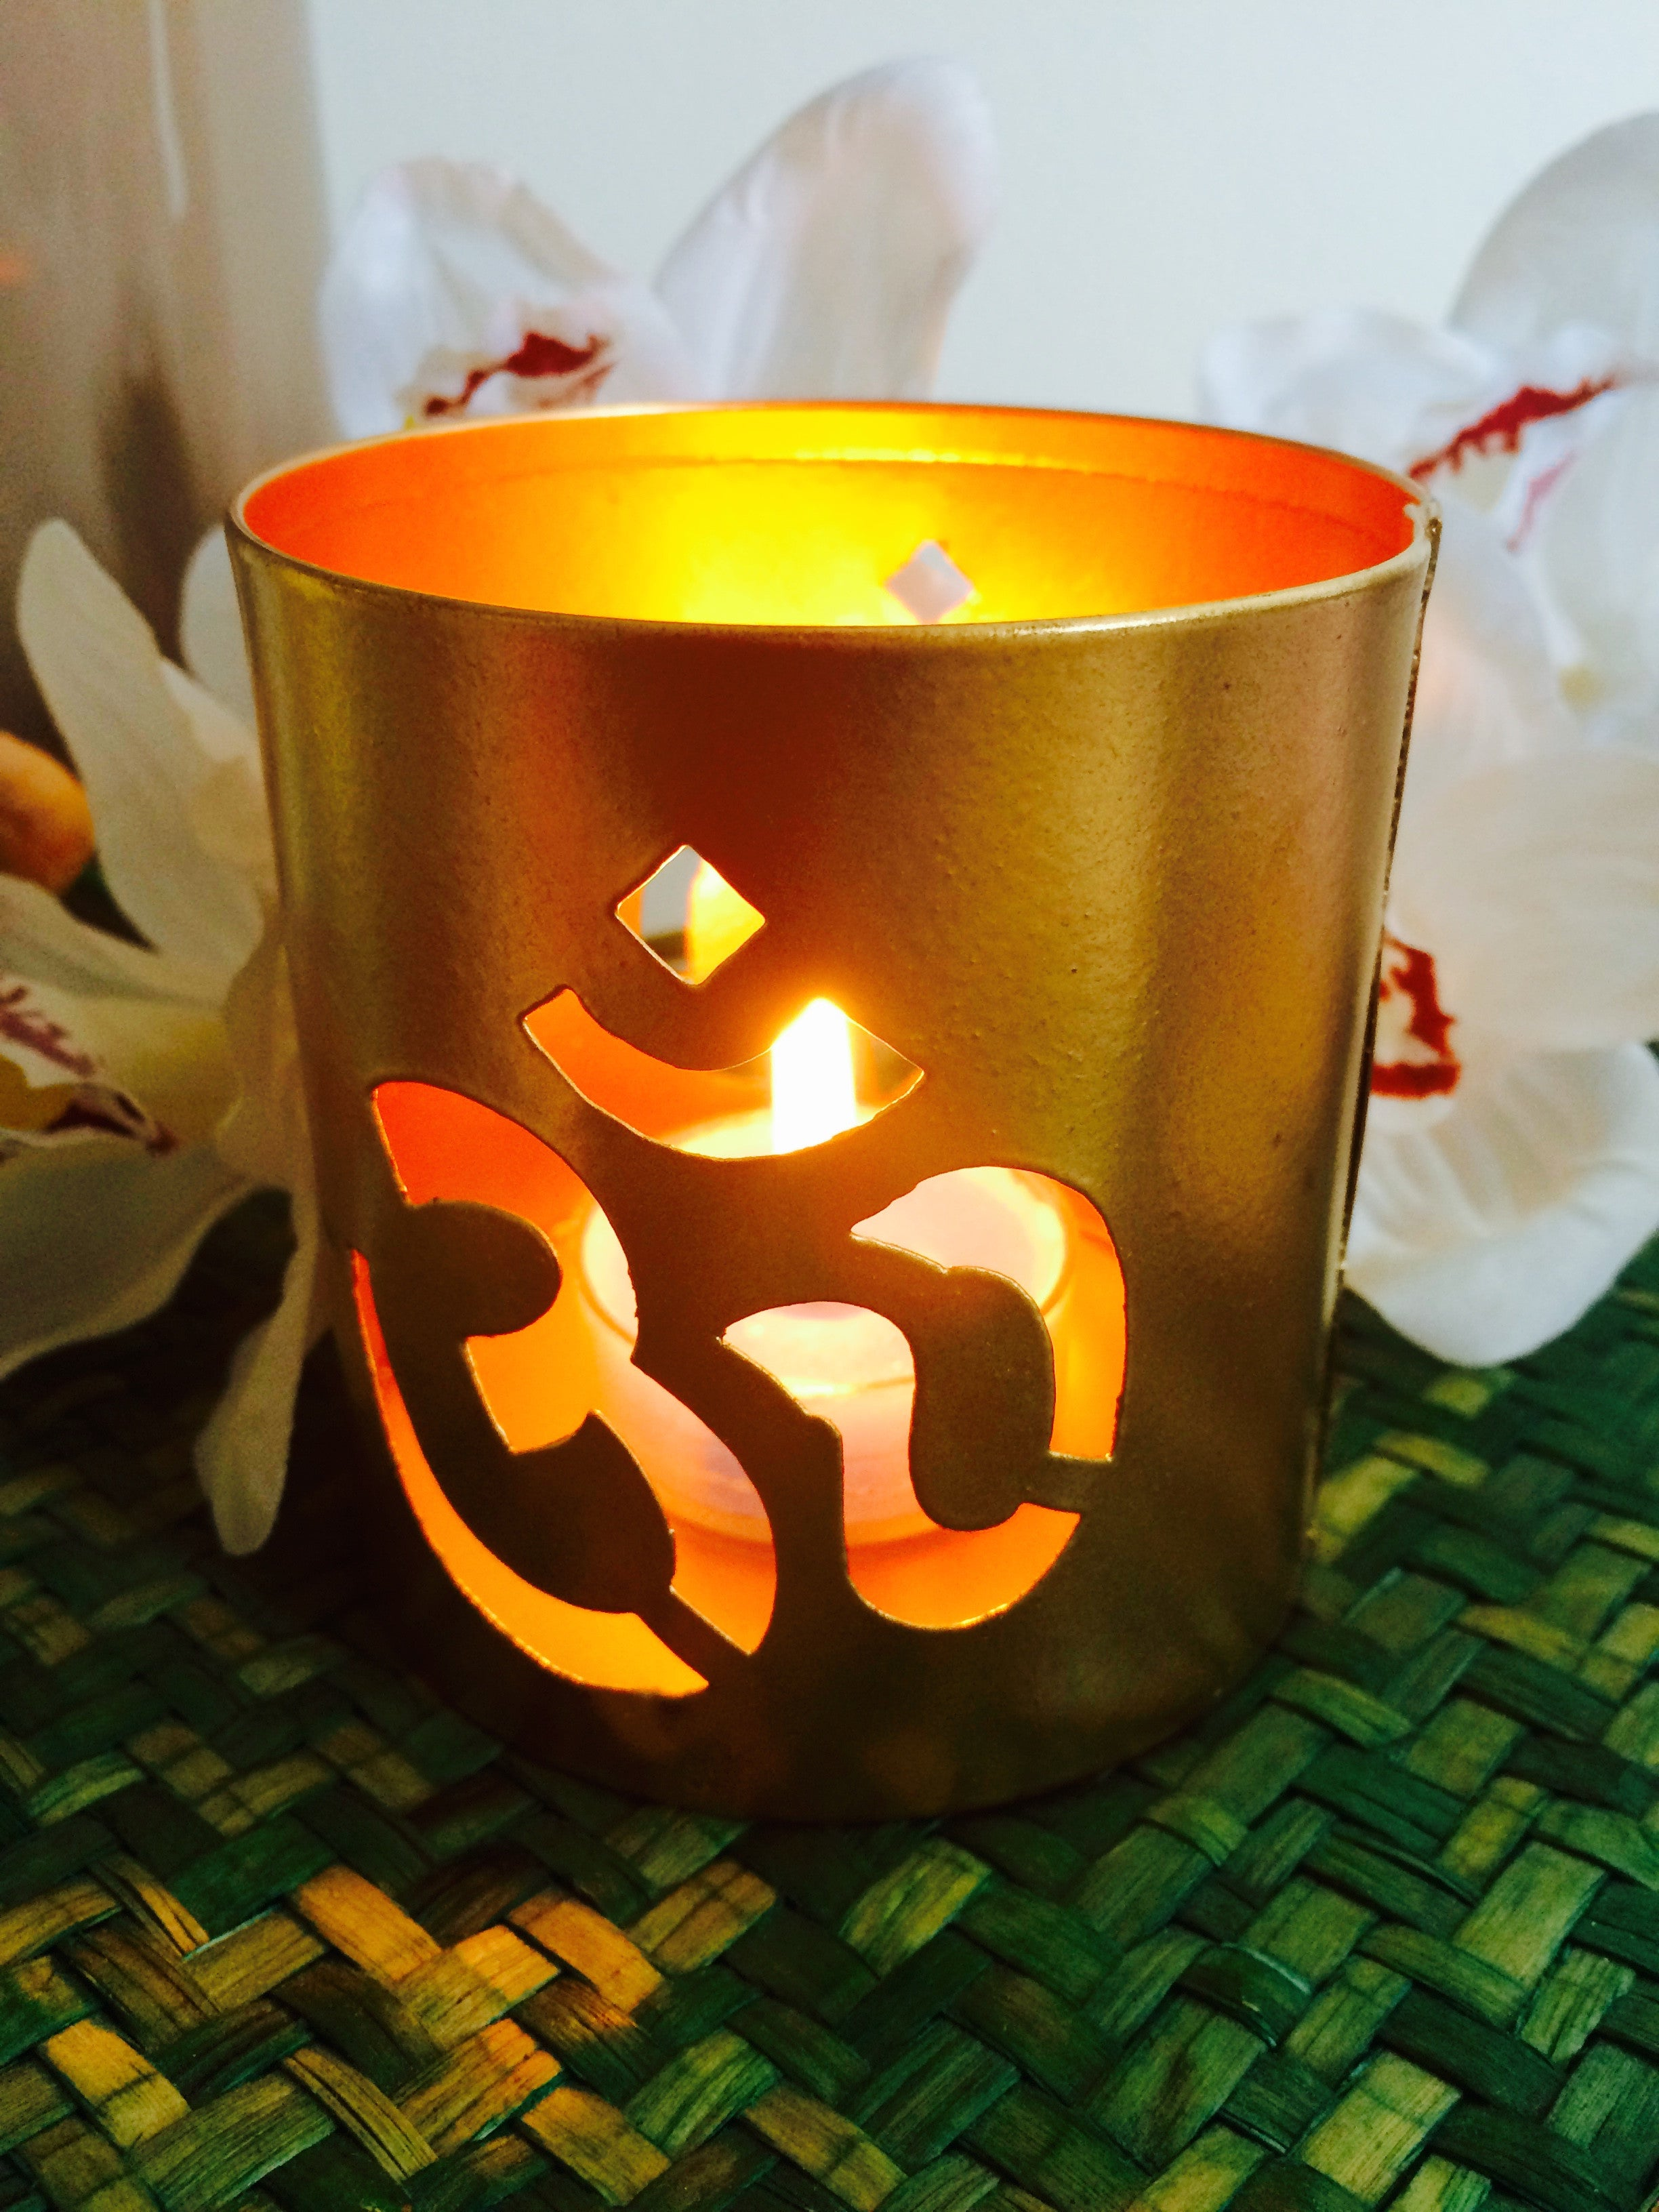 OM Tealight Candle Holder - Can be used as Meditation Tool